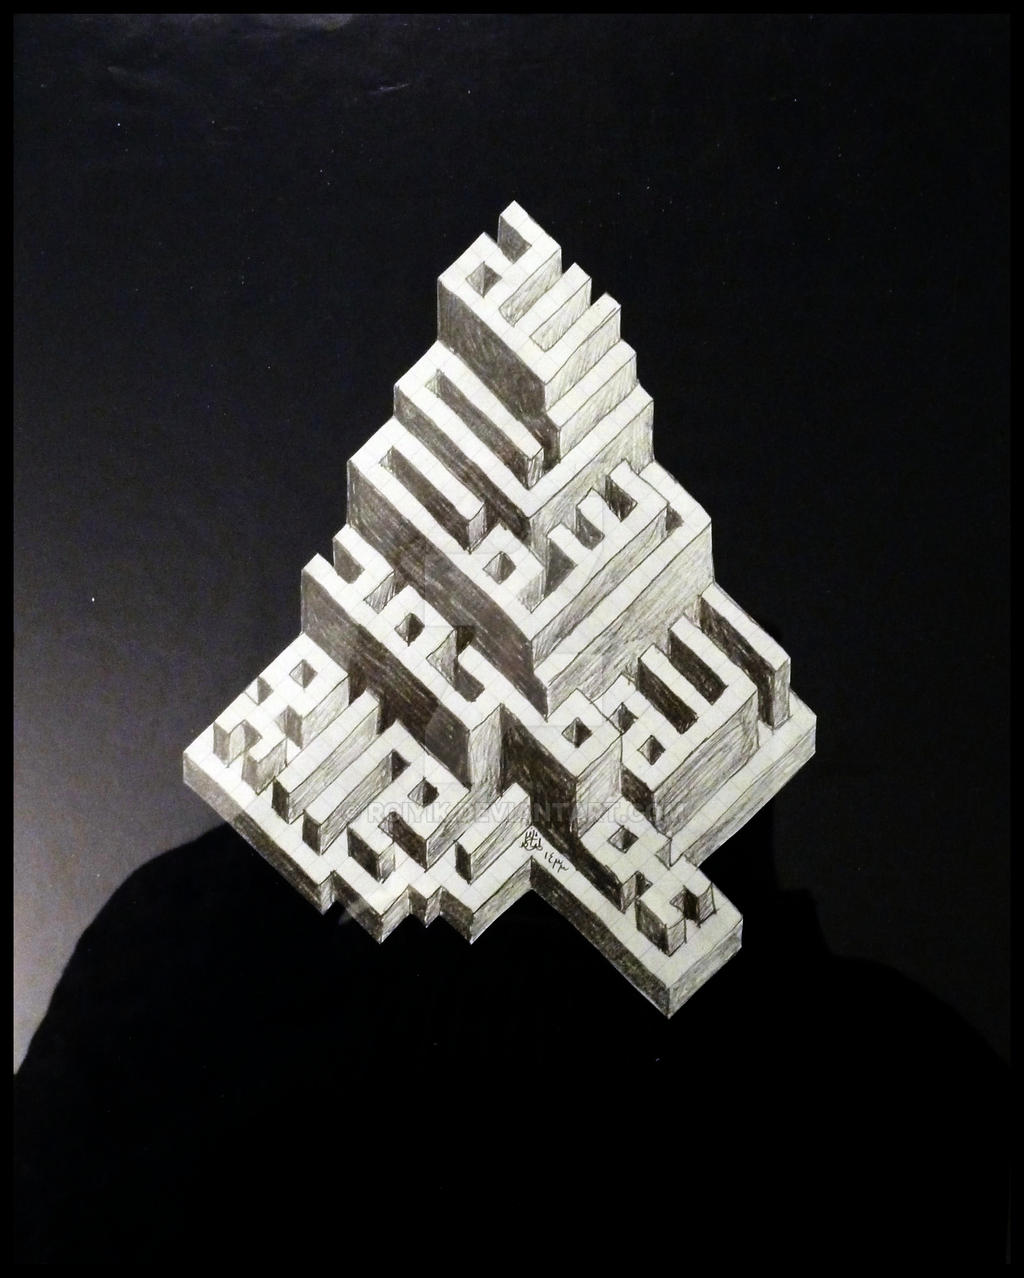 Kufi Extrusion 3 by RoiYik